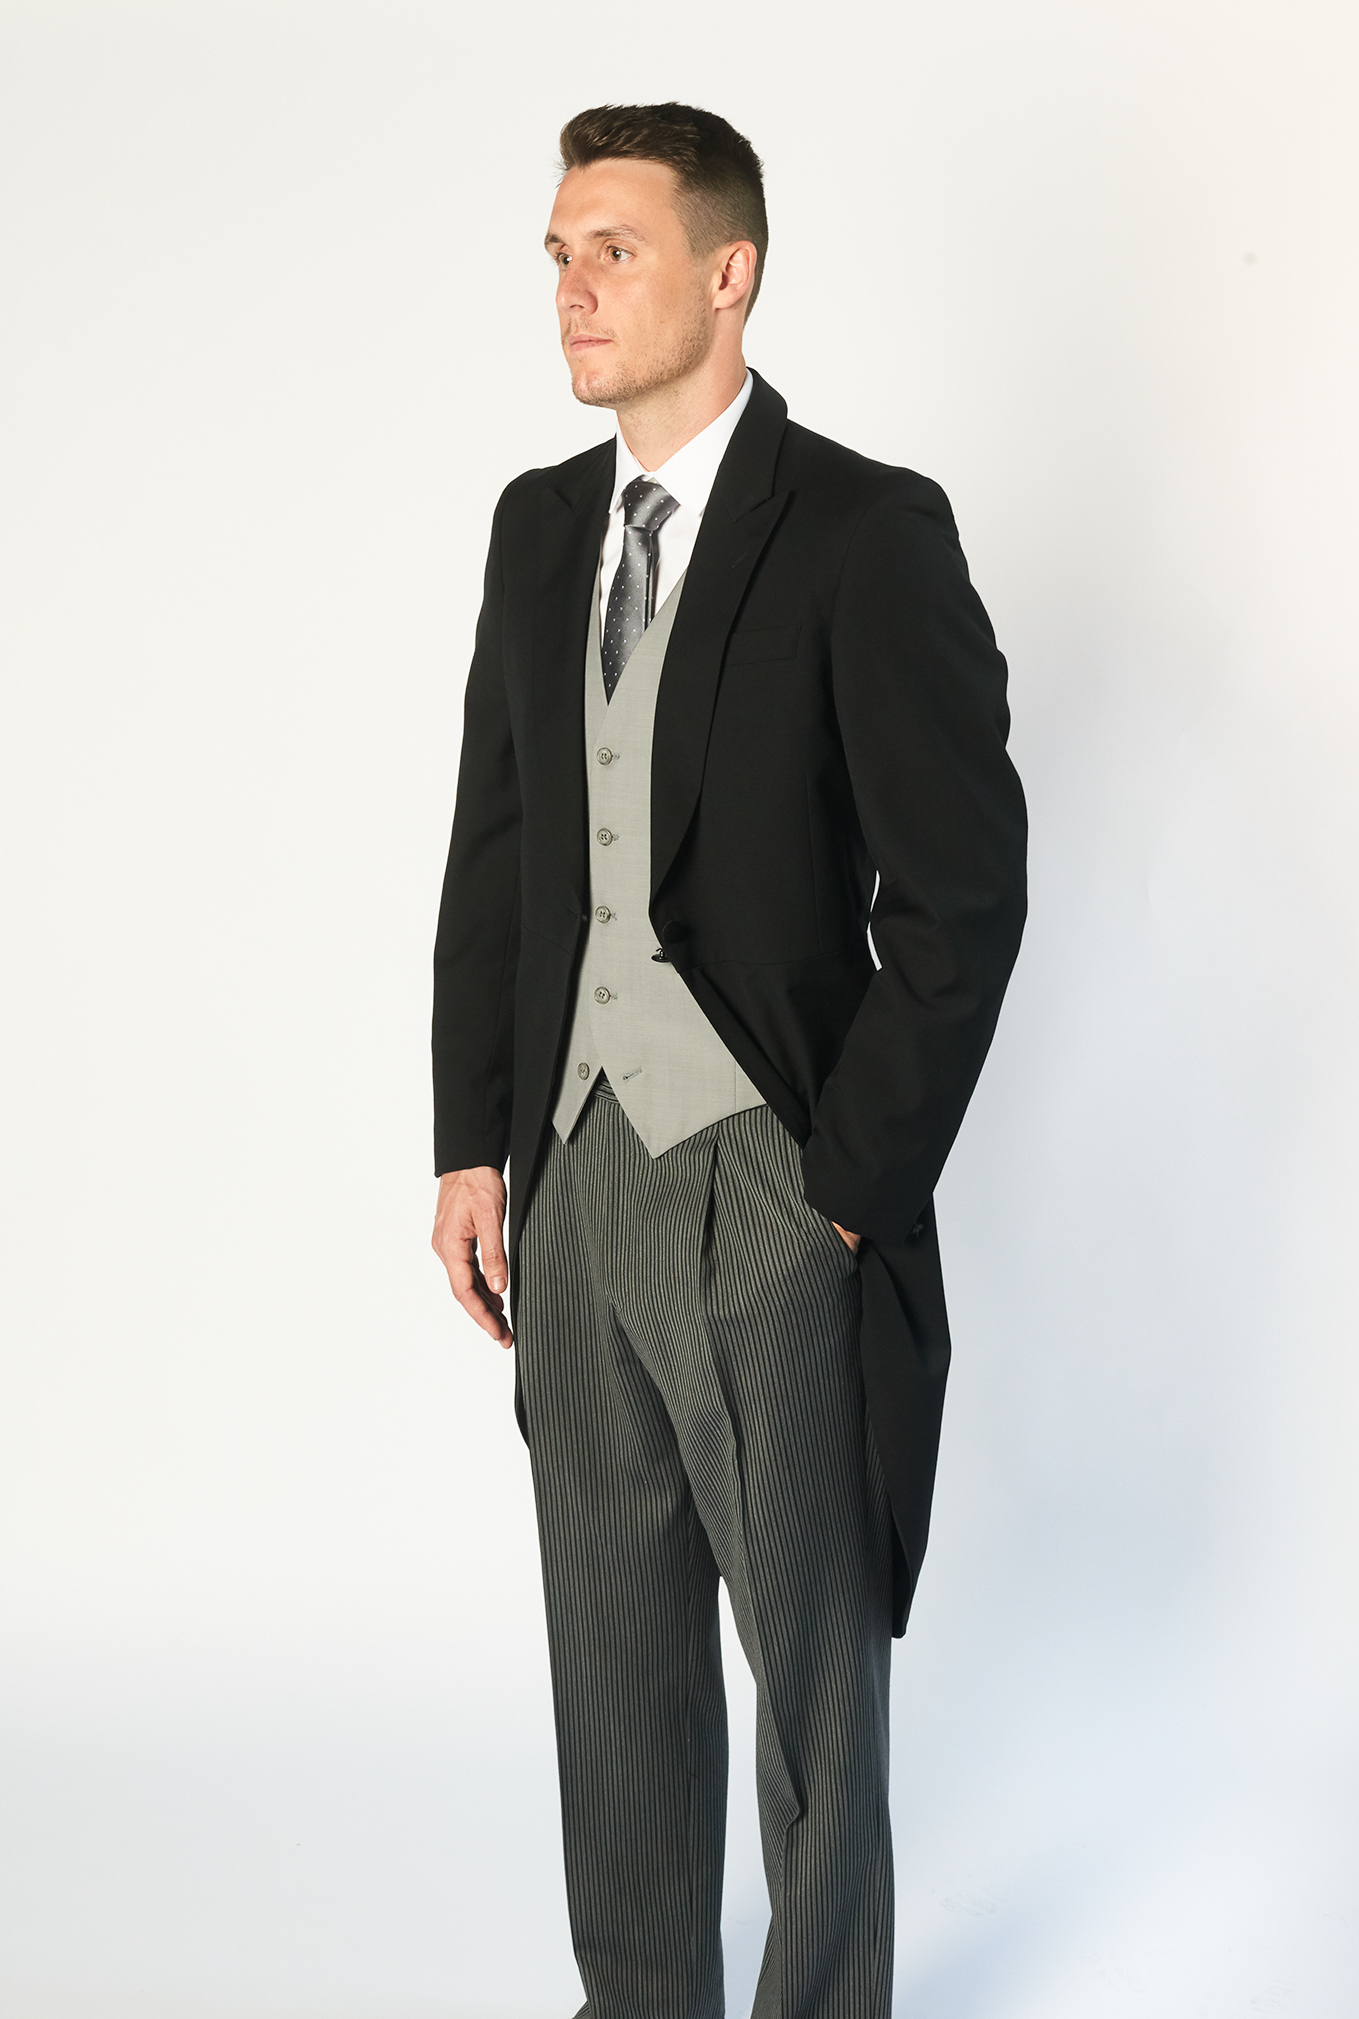 The Morning Suit side view